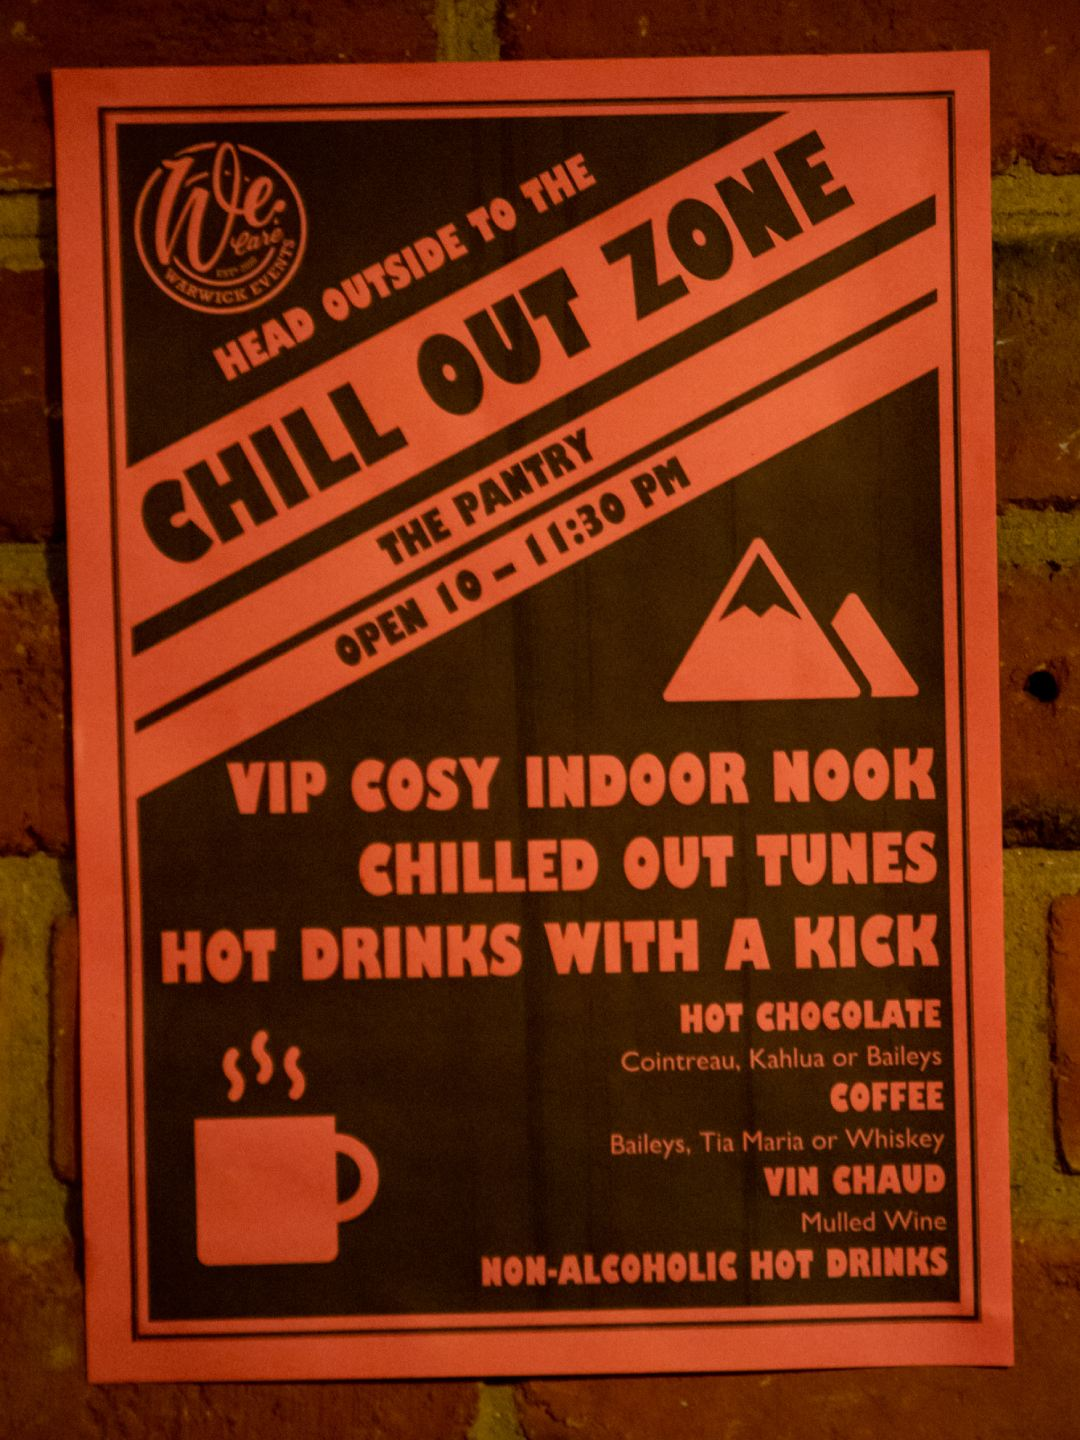 Chill out zone poster